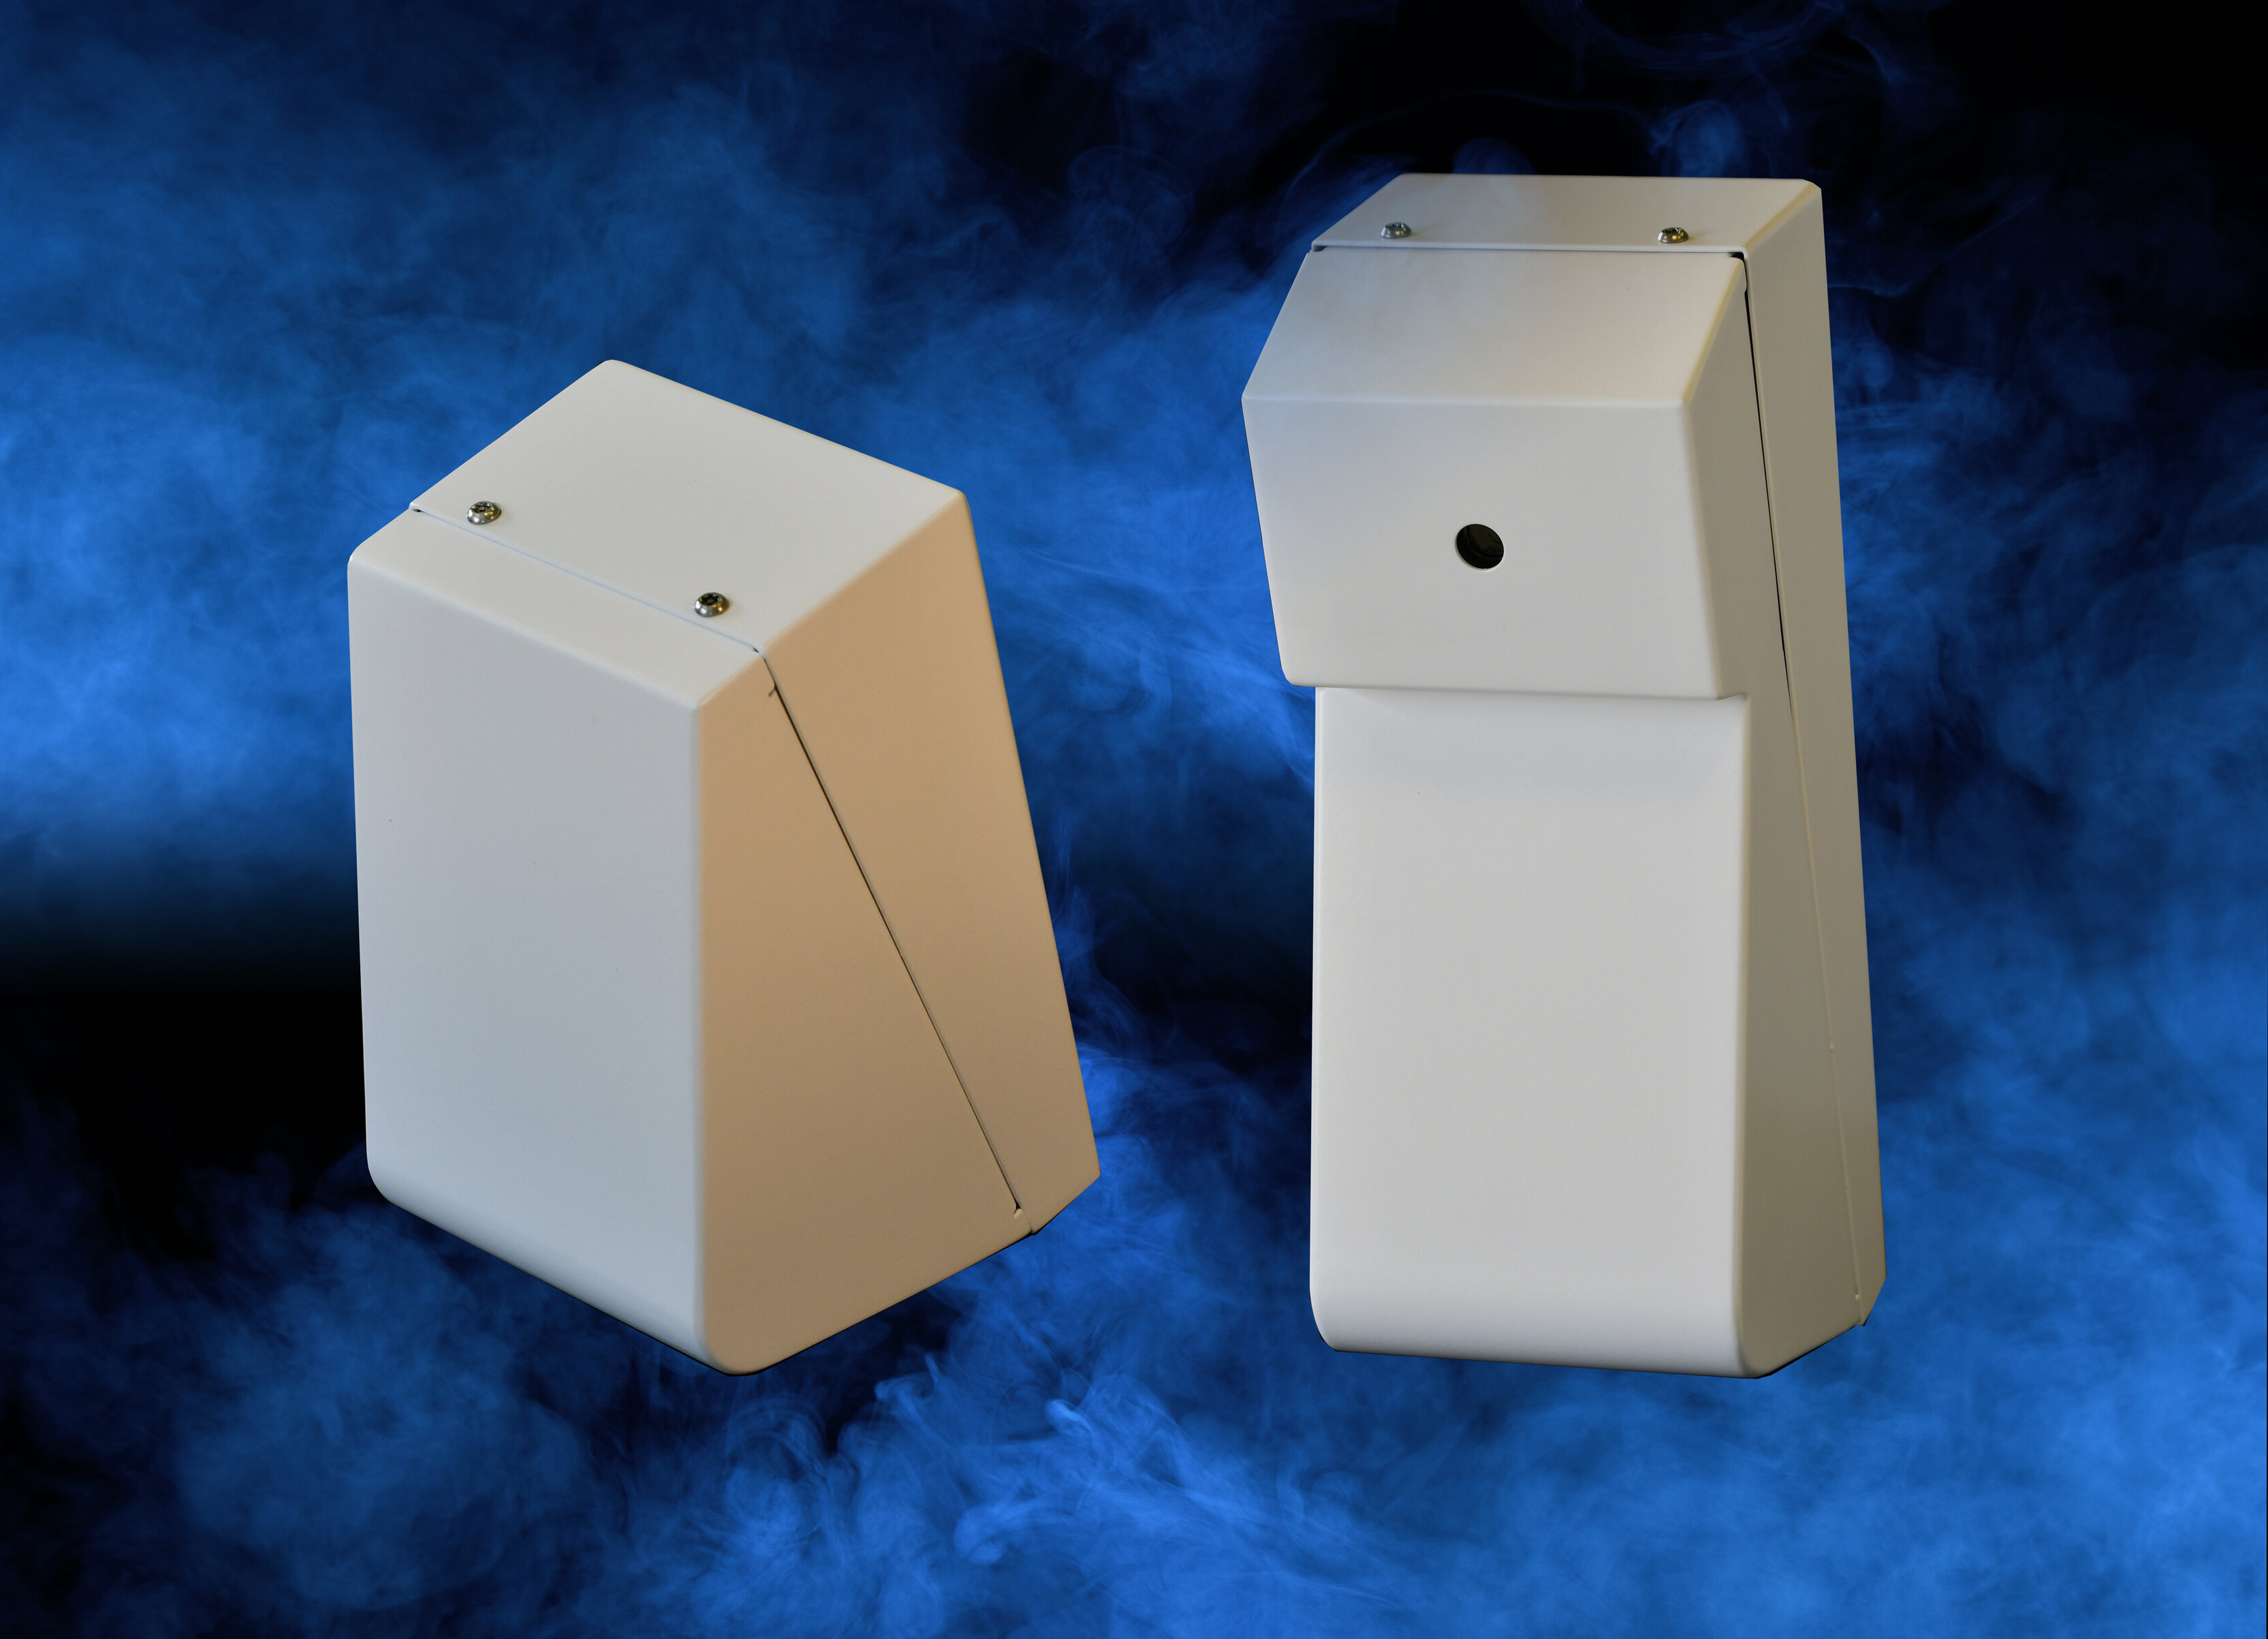 Melton Mowbray-based Eclipse Digital Solutions launch two security fogging devices